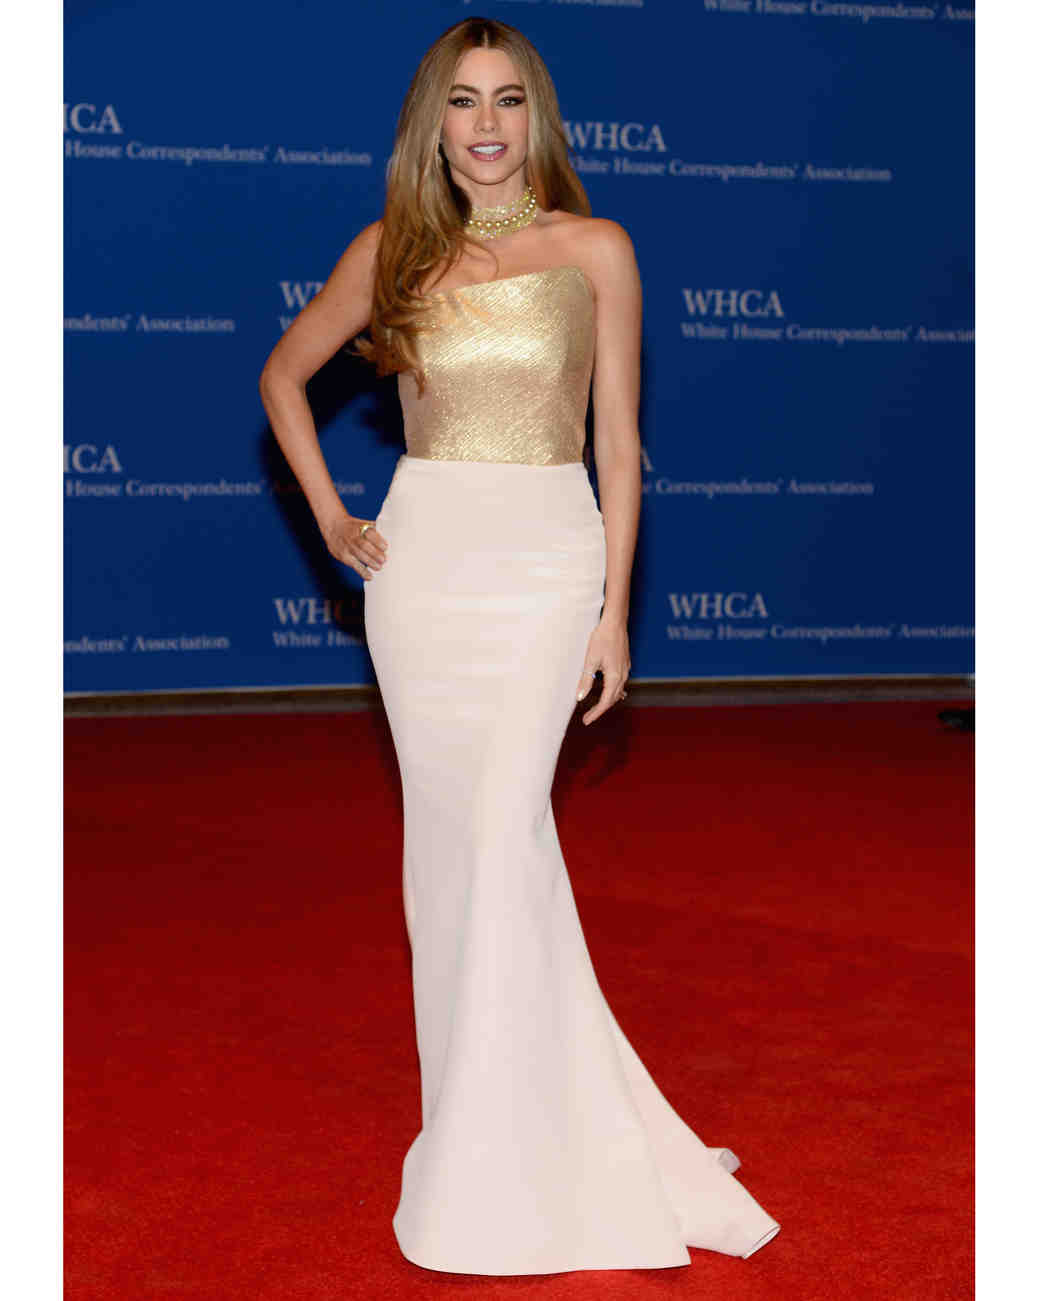 sofia-vergara-red-carpet-white-house-correspondents-dinner-romona-keveza-0815.jpg